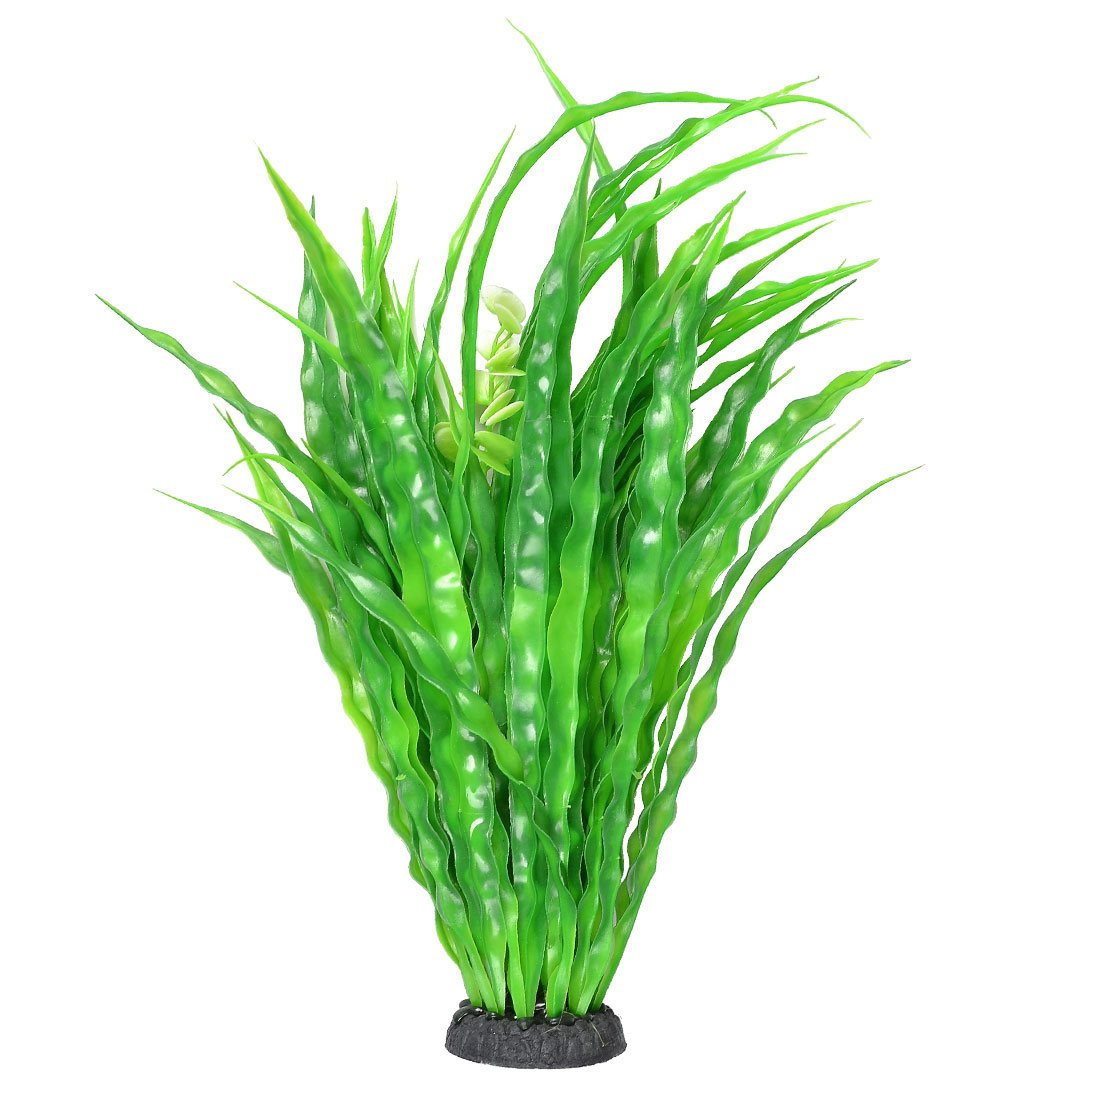 "15.7"" High Linear Leaf Flower Adorned Fish Tank Decorative Plastic Plant"